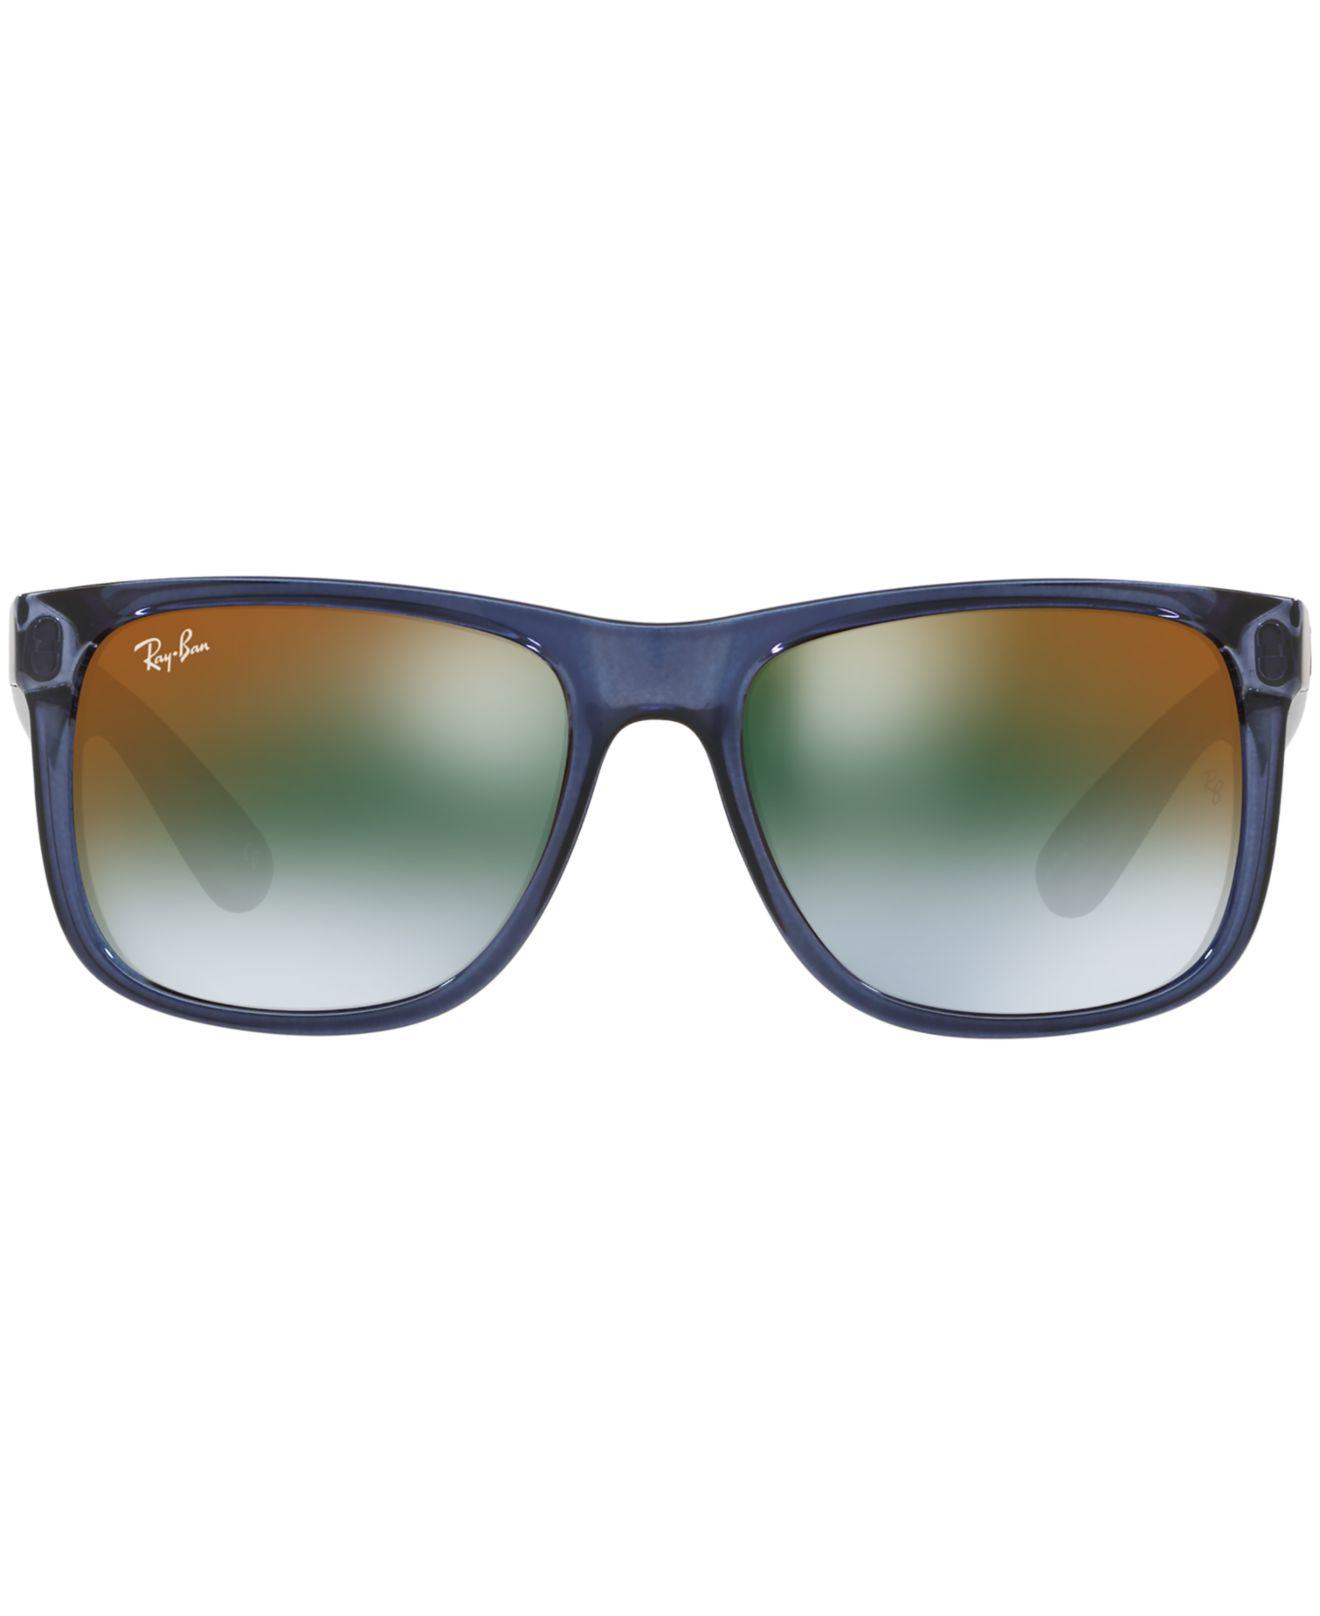 Lyst - Ray-Ban Sunglasses, Justin Rb4165 54 in Blue for Men 43b5ad905345